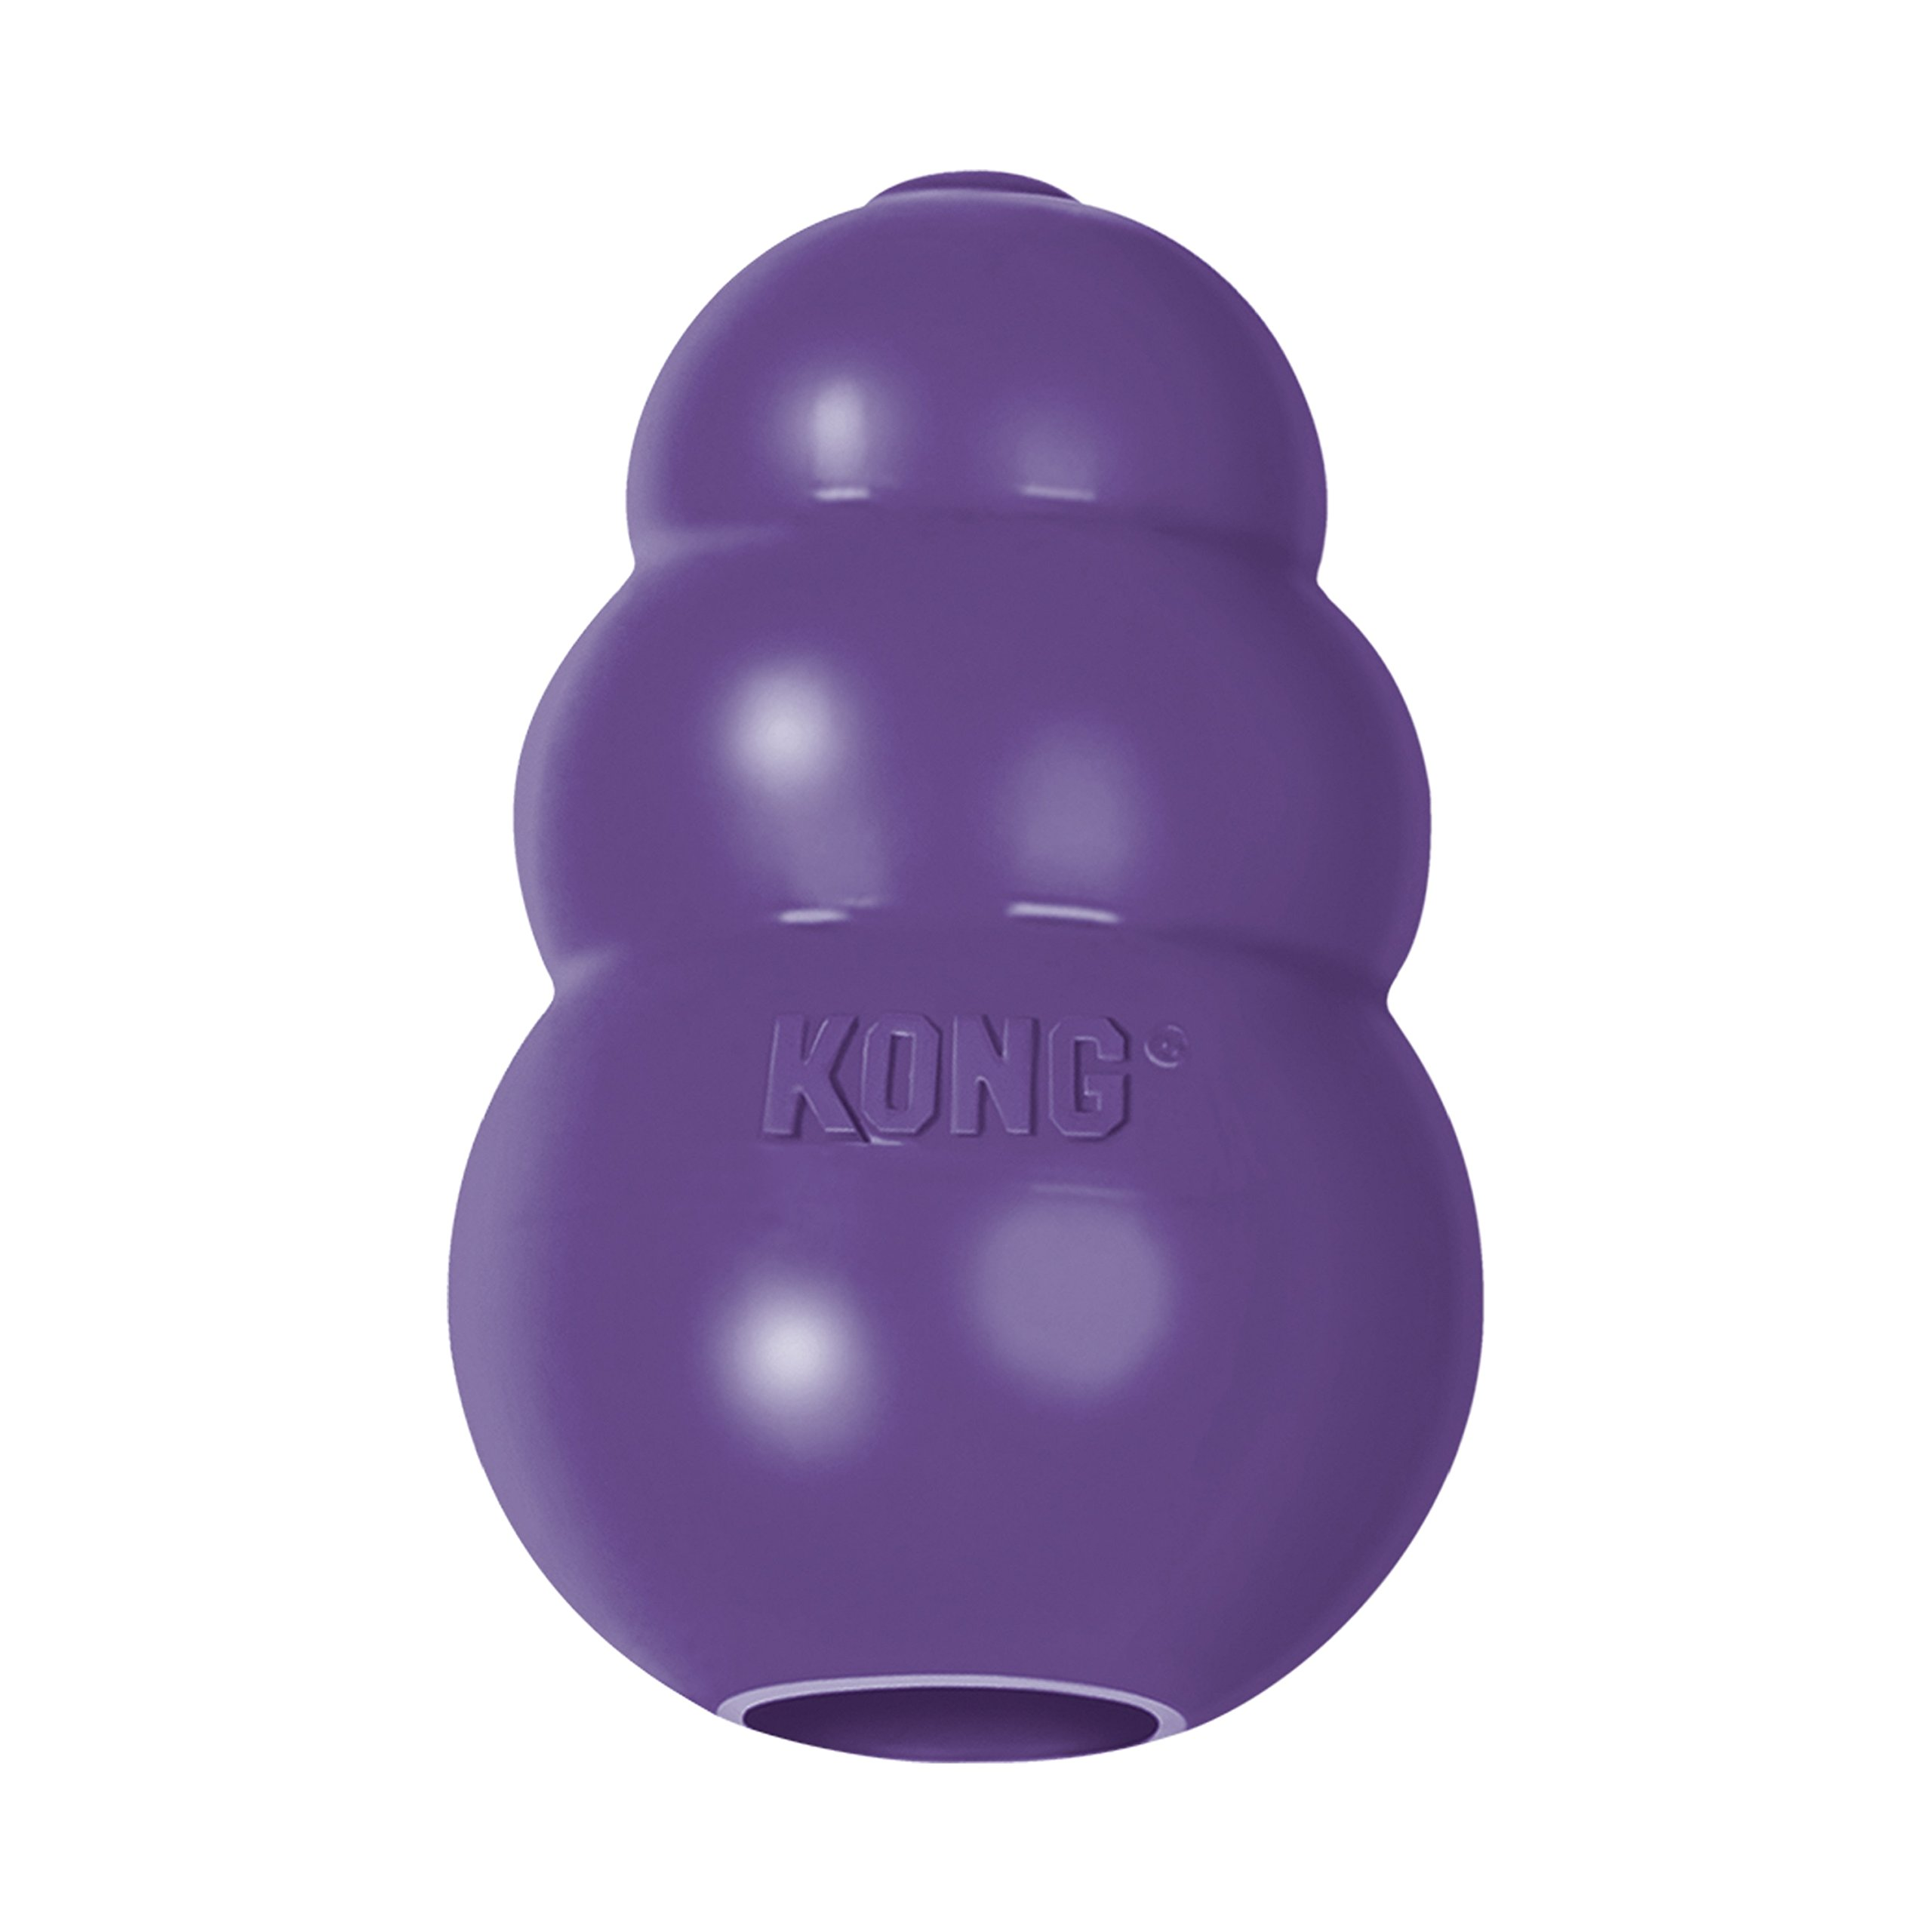 KONG Senior KONG Dog Toy Purple Medium